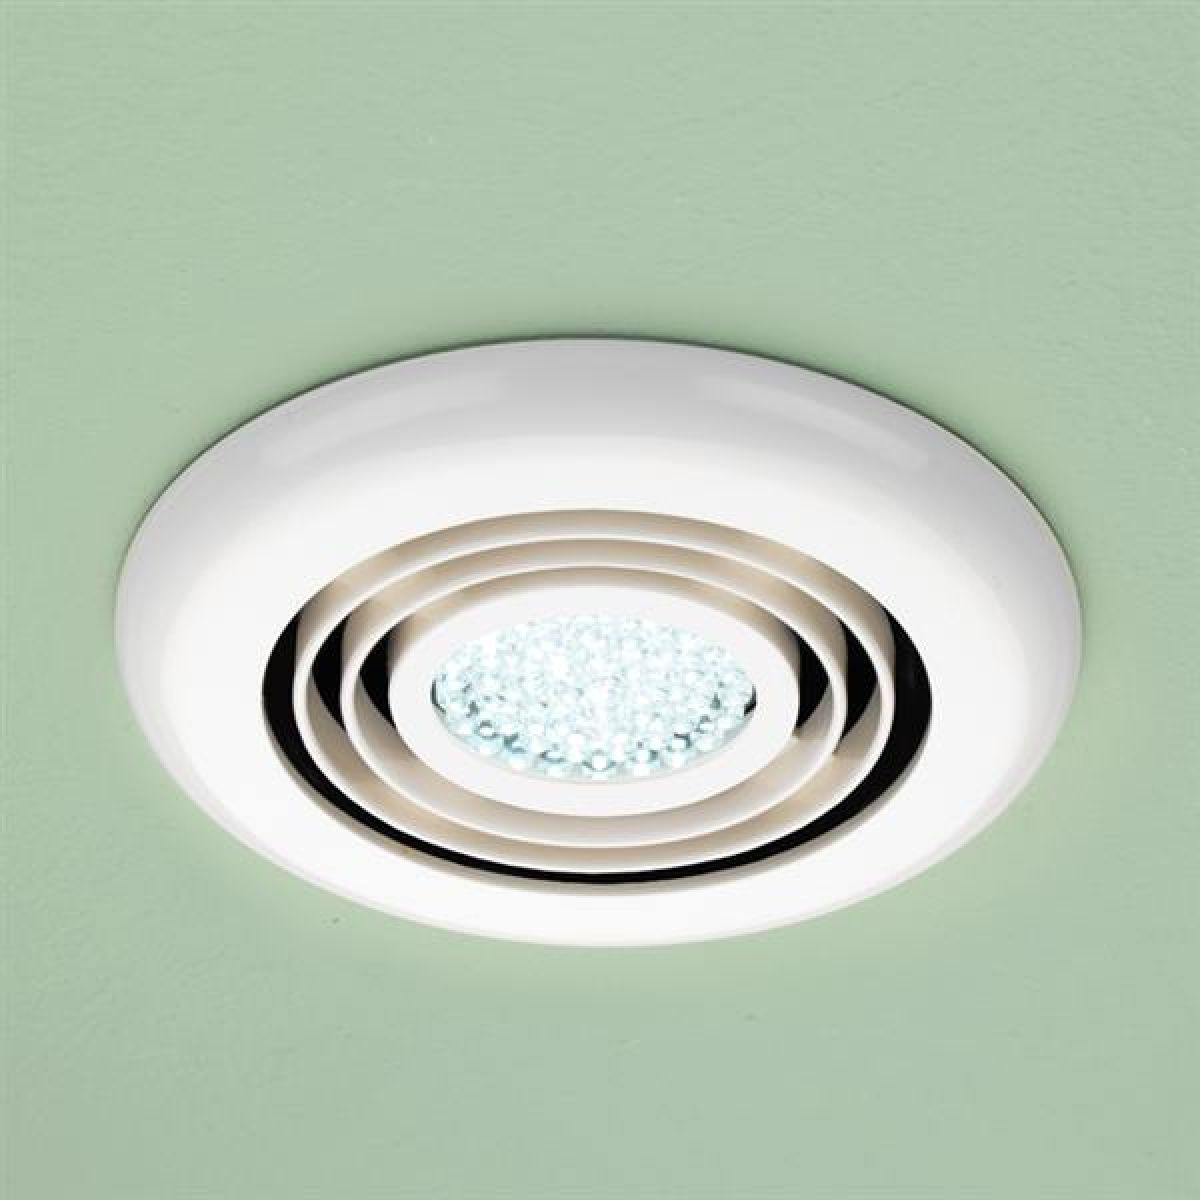 HiB Cyclone Cool White LED Inline Wetroom Extractor Fan in White